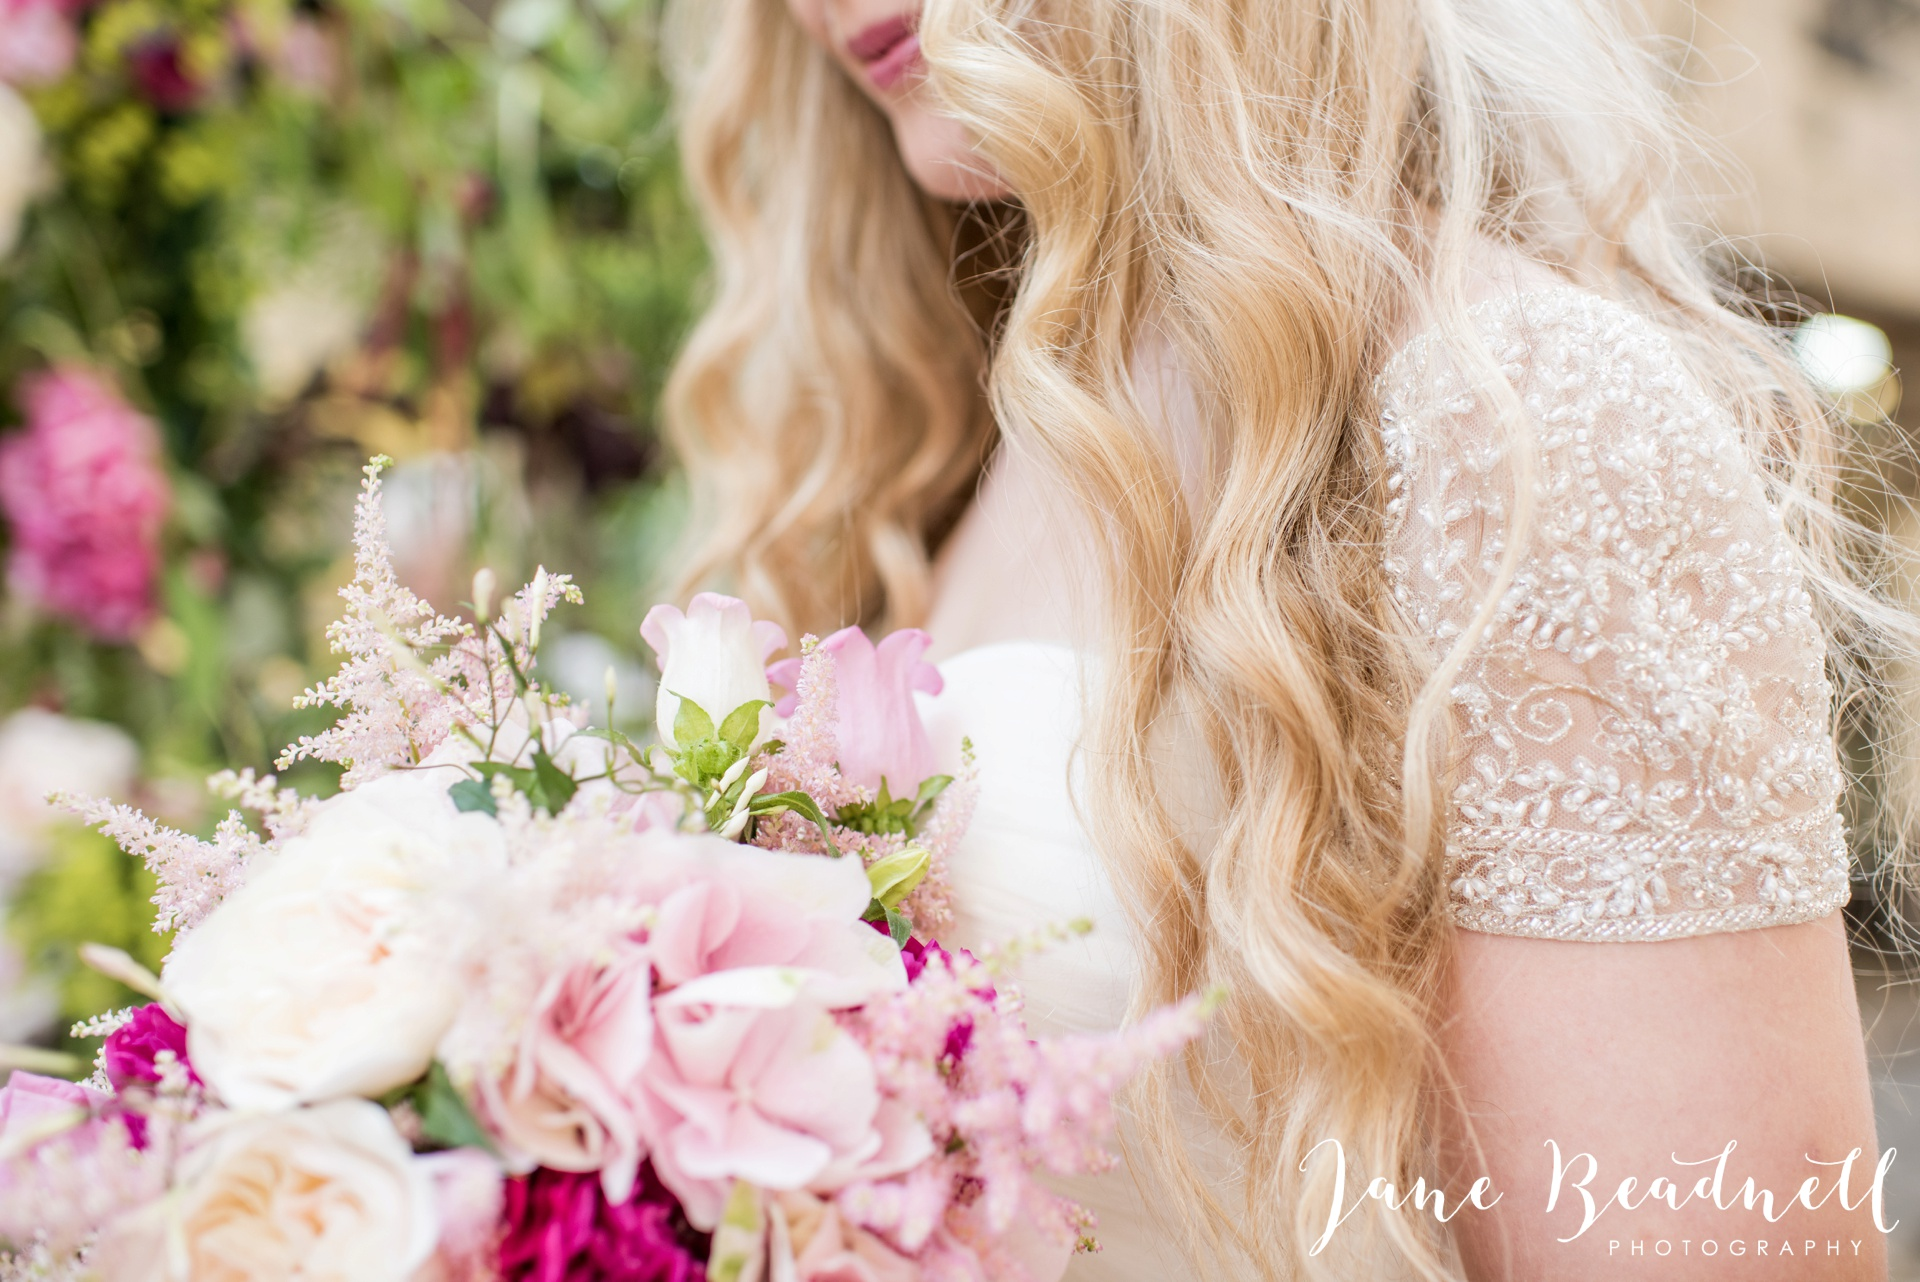 Fine art wedding photography by Jane Beadnell Photography Leafy Couture wedding flowers_0012